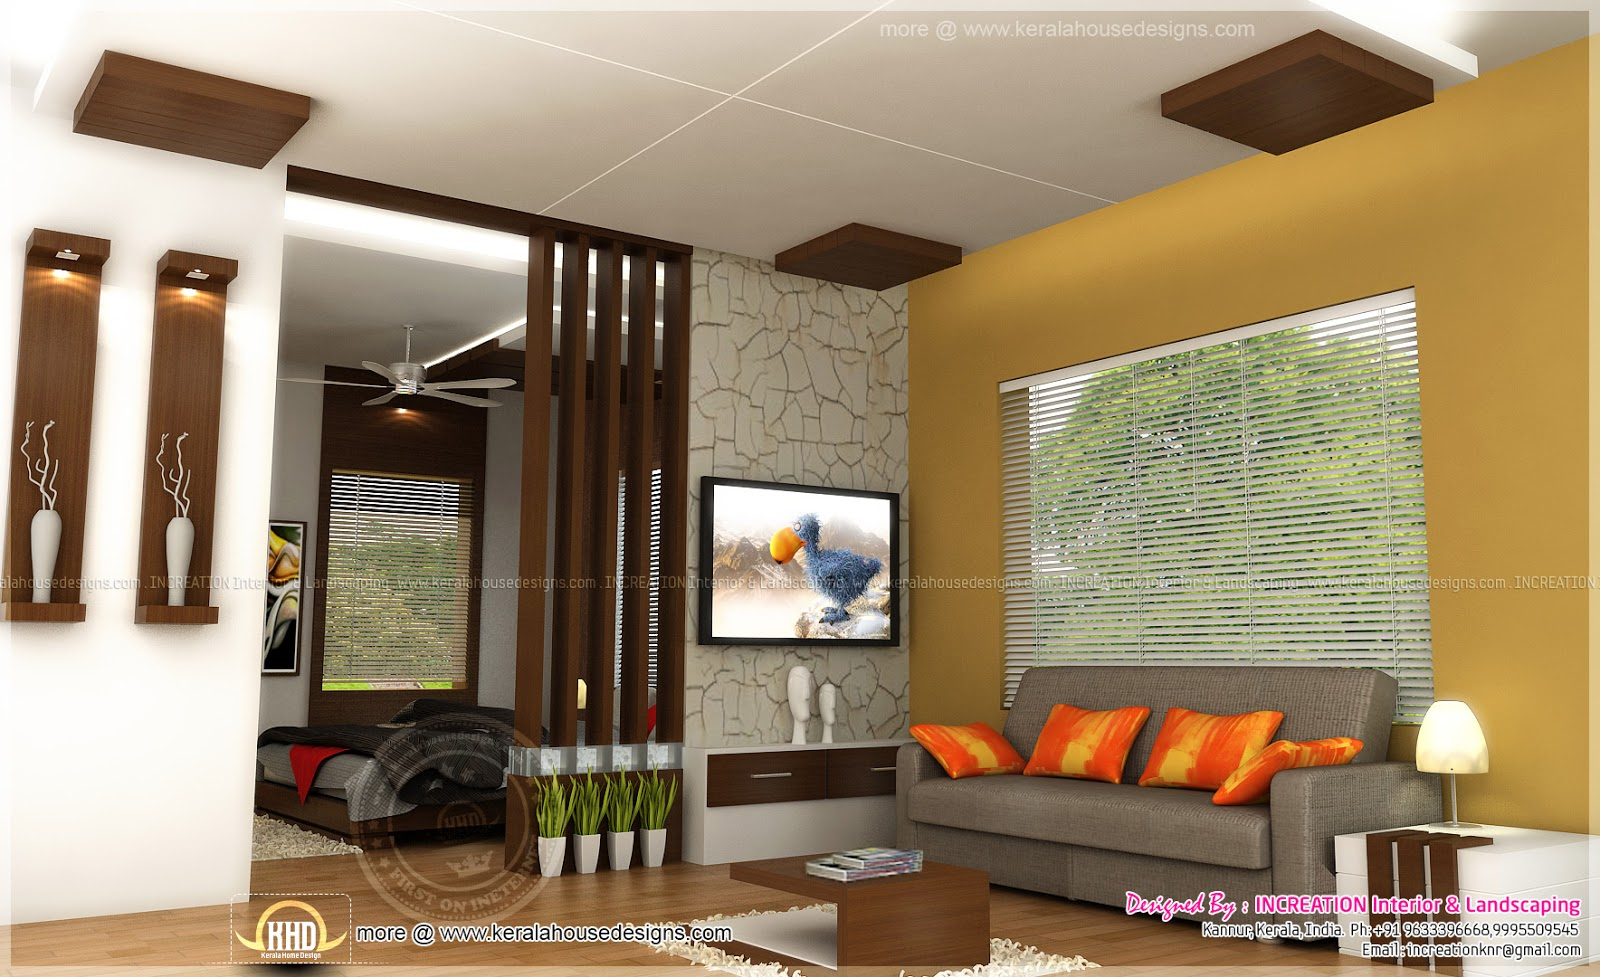 Interior designs from kannur kerala home kerala plans for Kerala house interior arch design